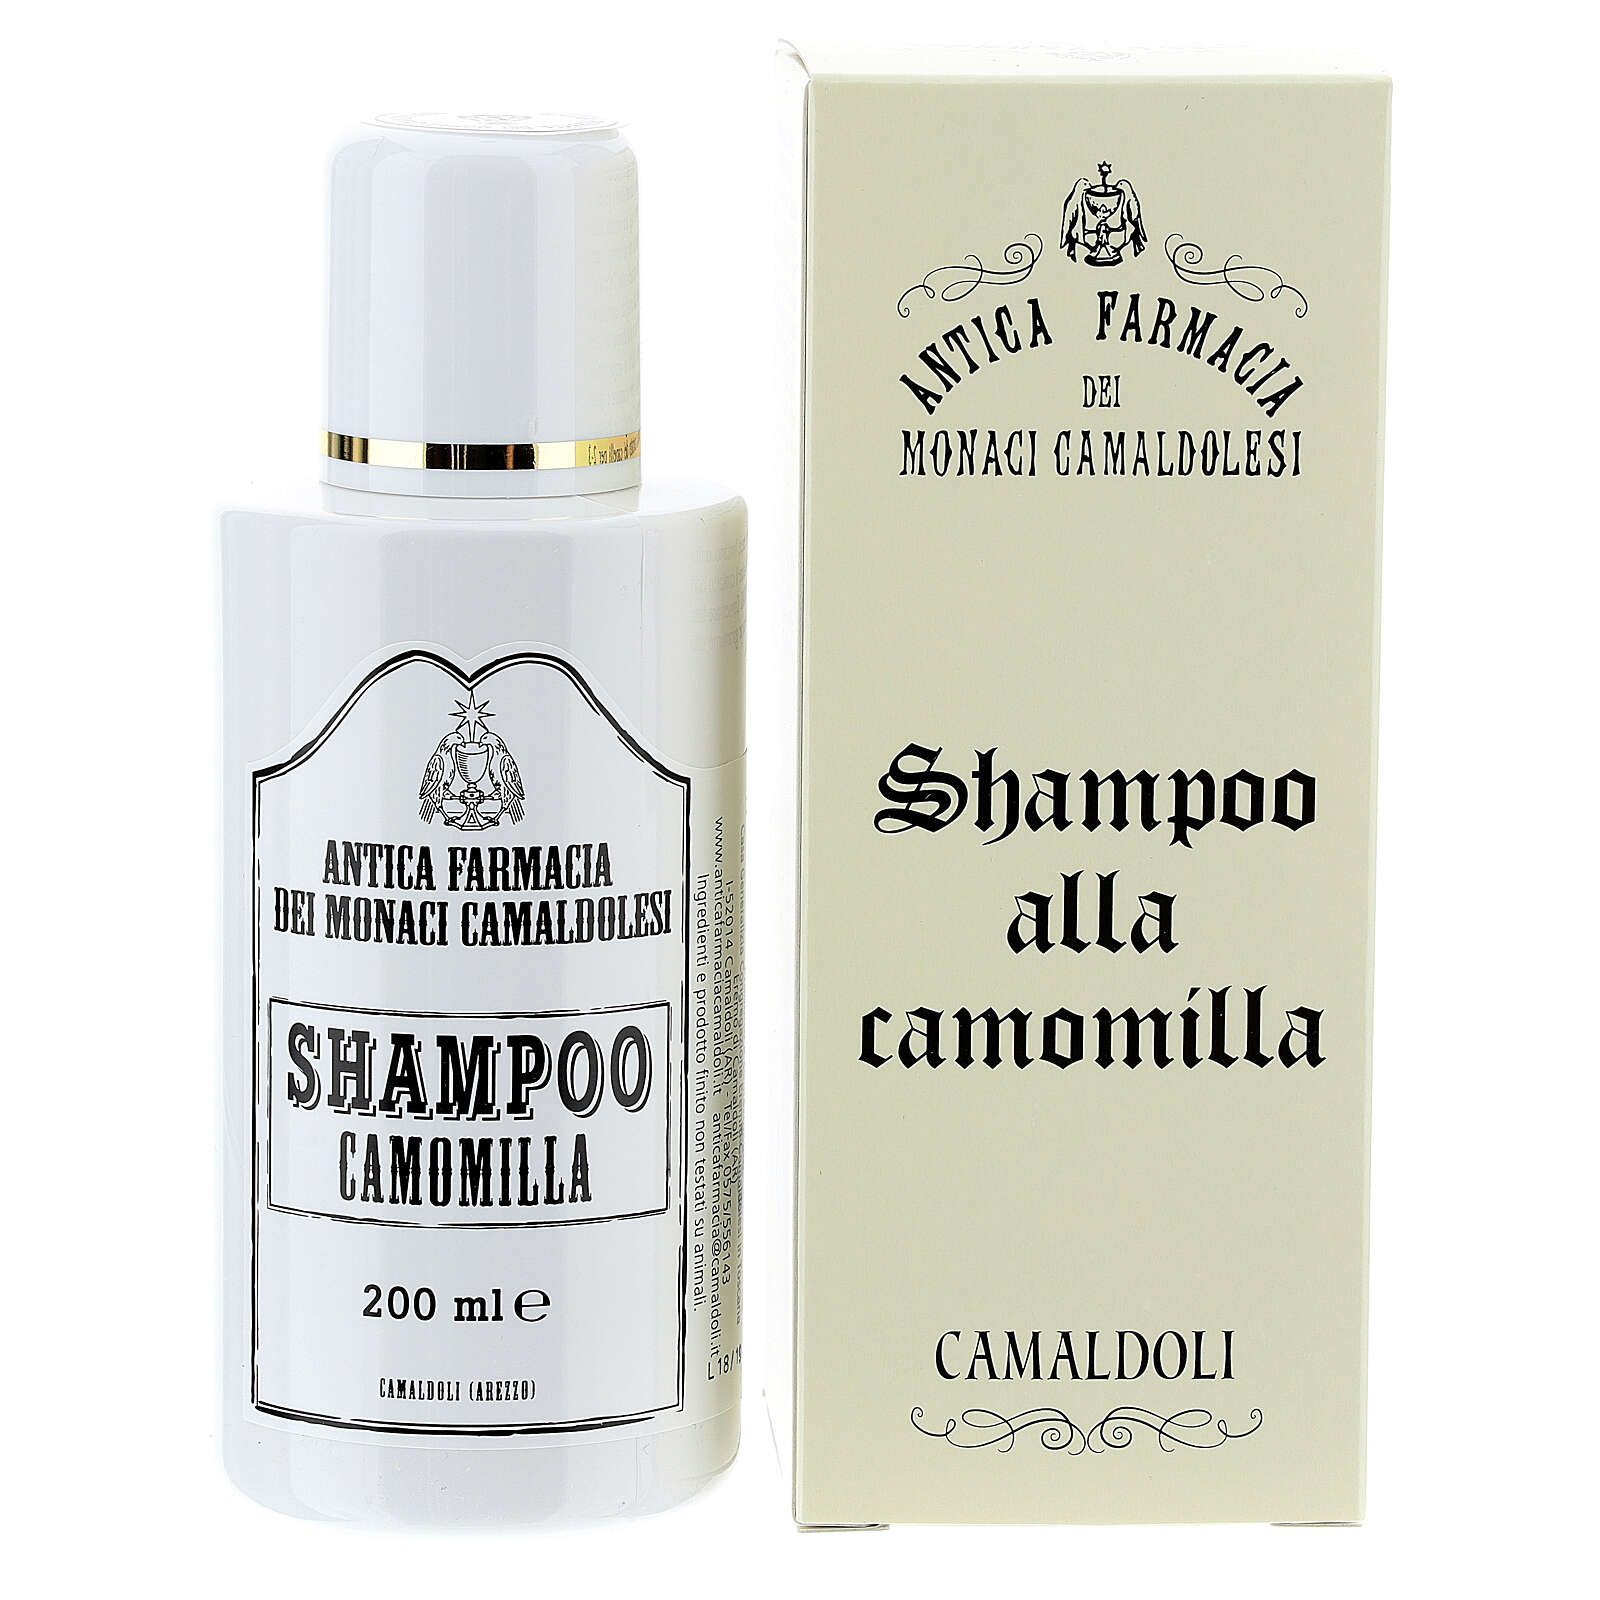 Shampoing, camomille, 200ml 4